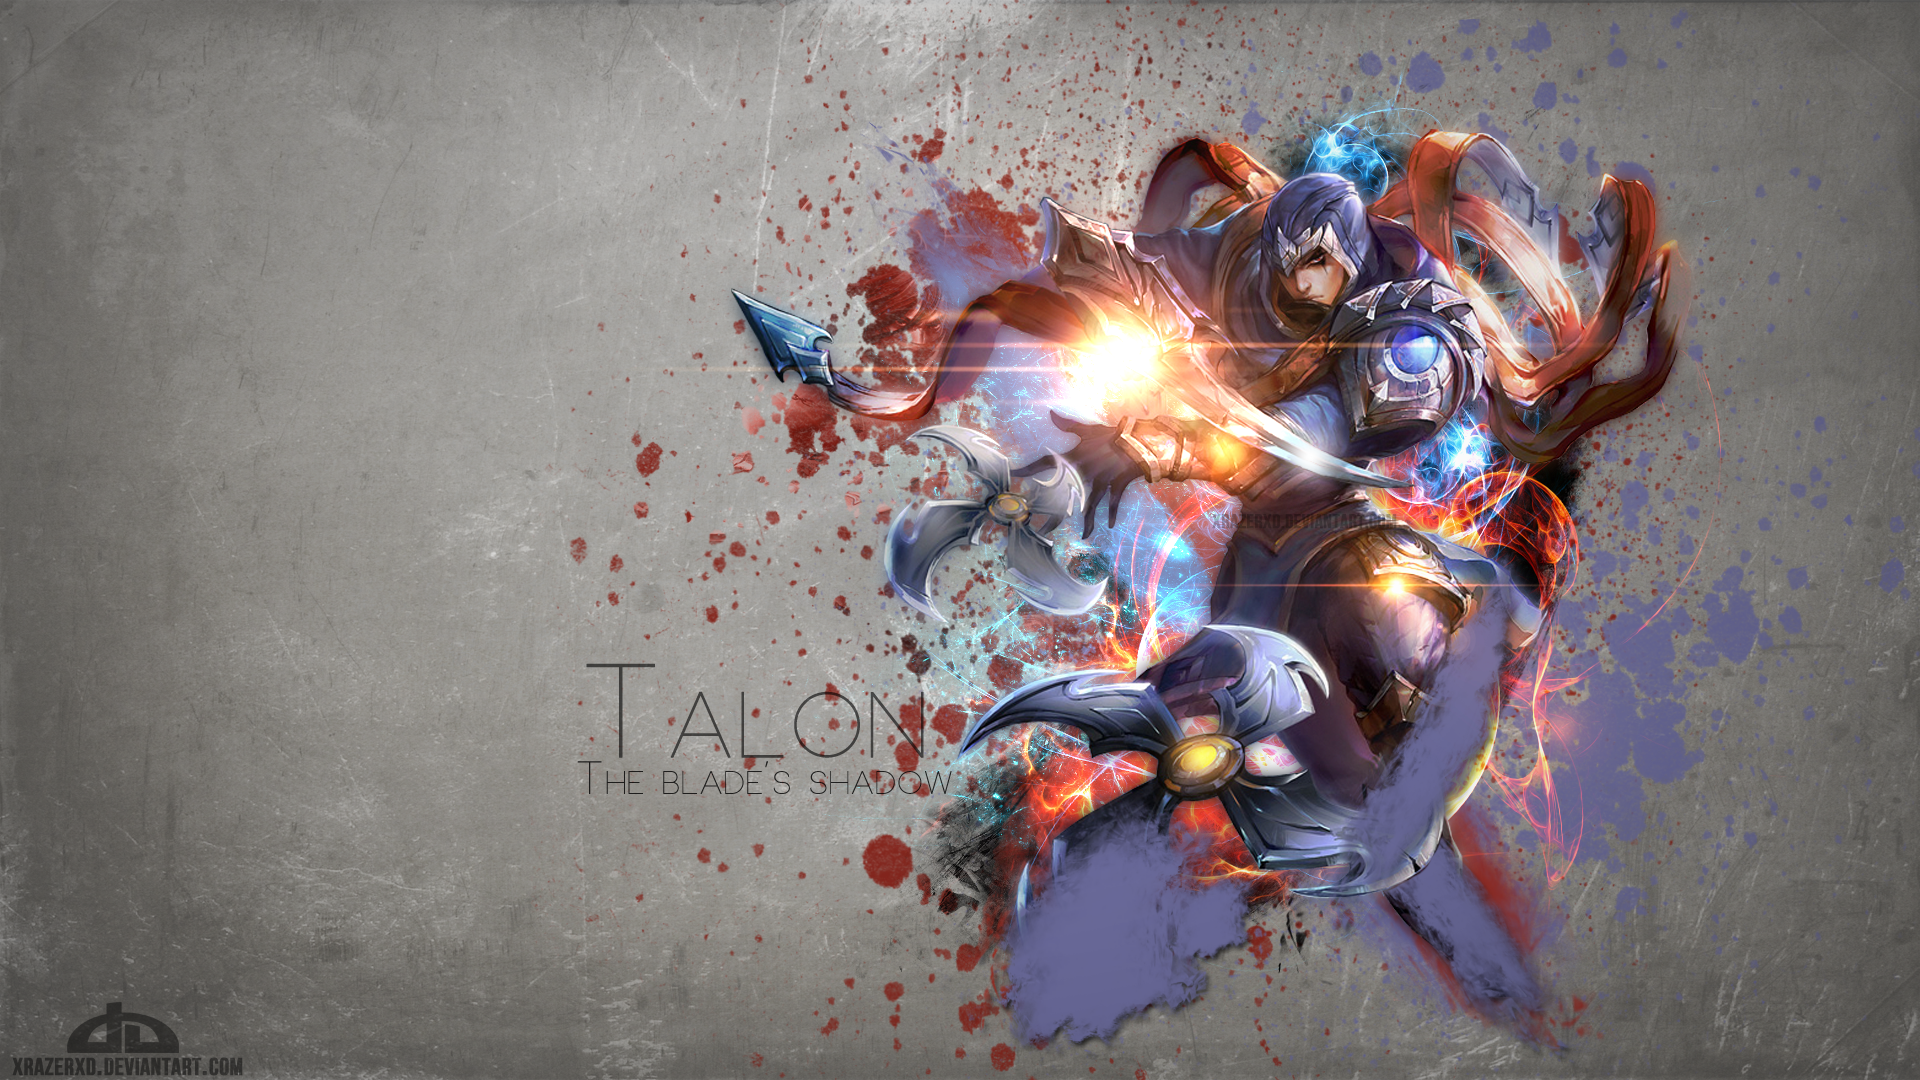 Talon wallpaper